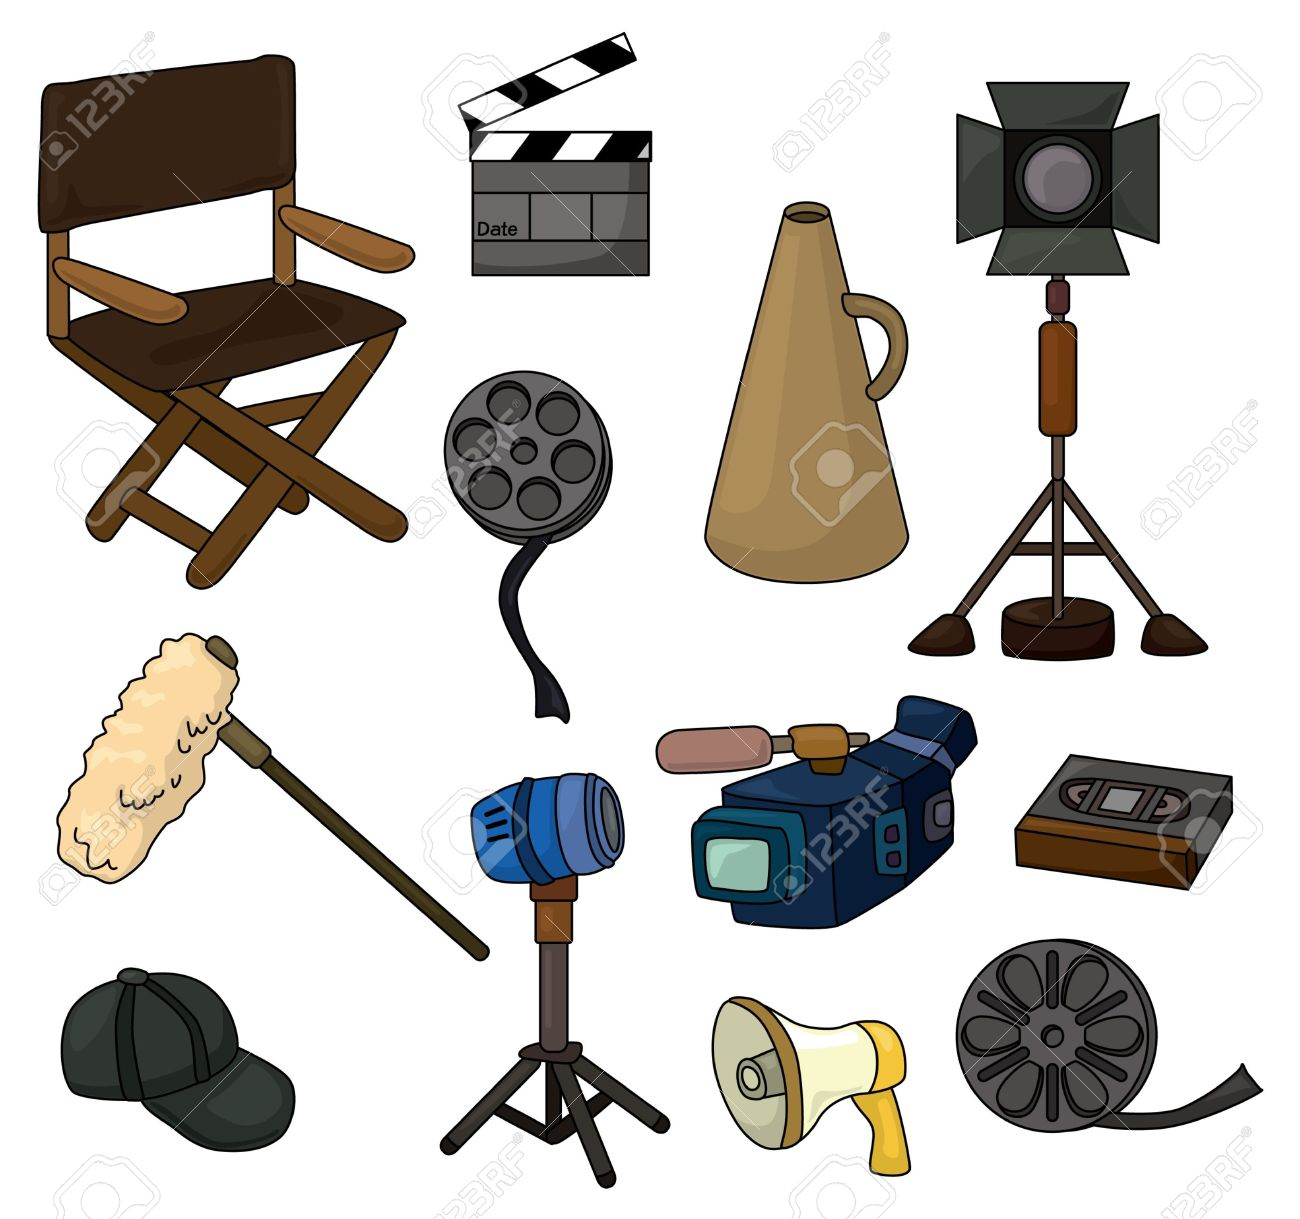 Cartoon Movie Equipment Icon Set Royalty Free Cliparts, Vectors.